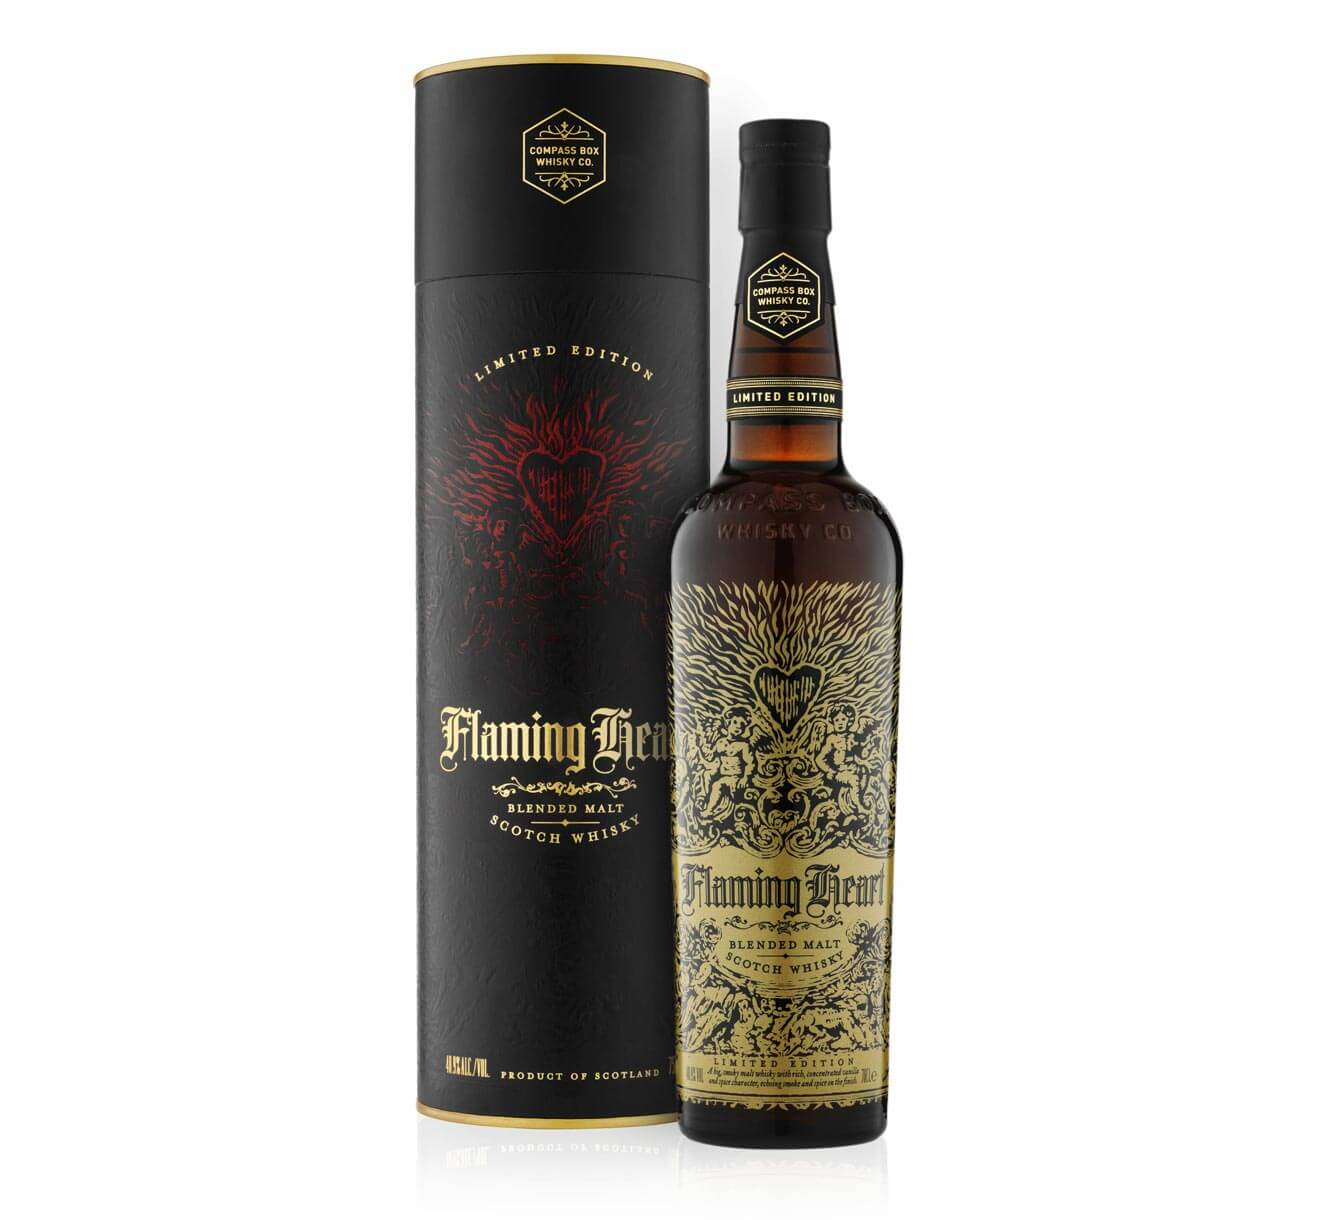 Compass Box Flaming Heart Whiskey, Fifteenth Anniversary Limited Edition